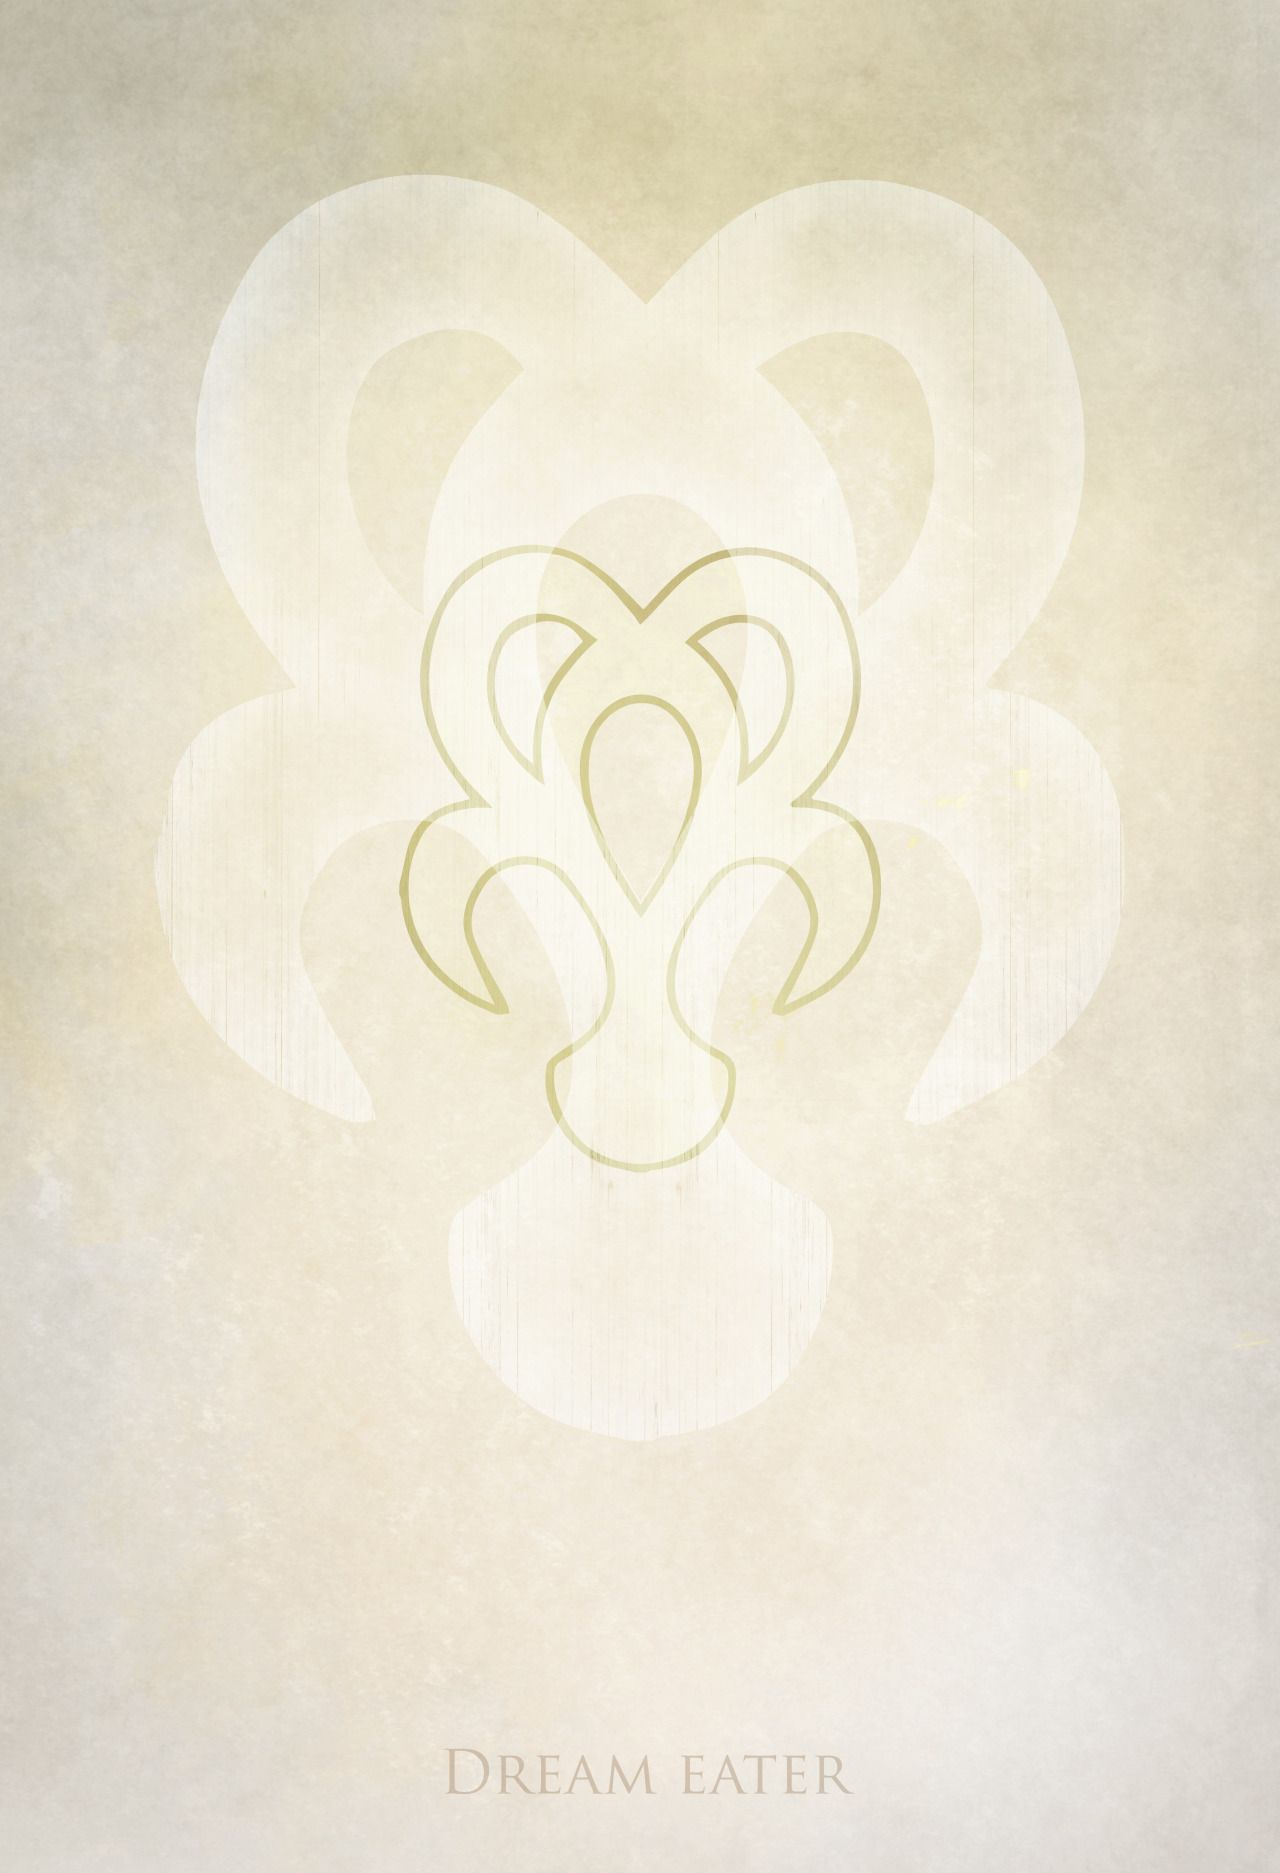 You Make A Good Other Mcashe Kingdom Hearts Symbols D Some Of